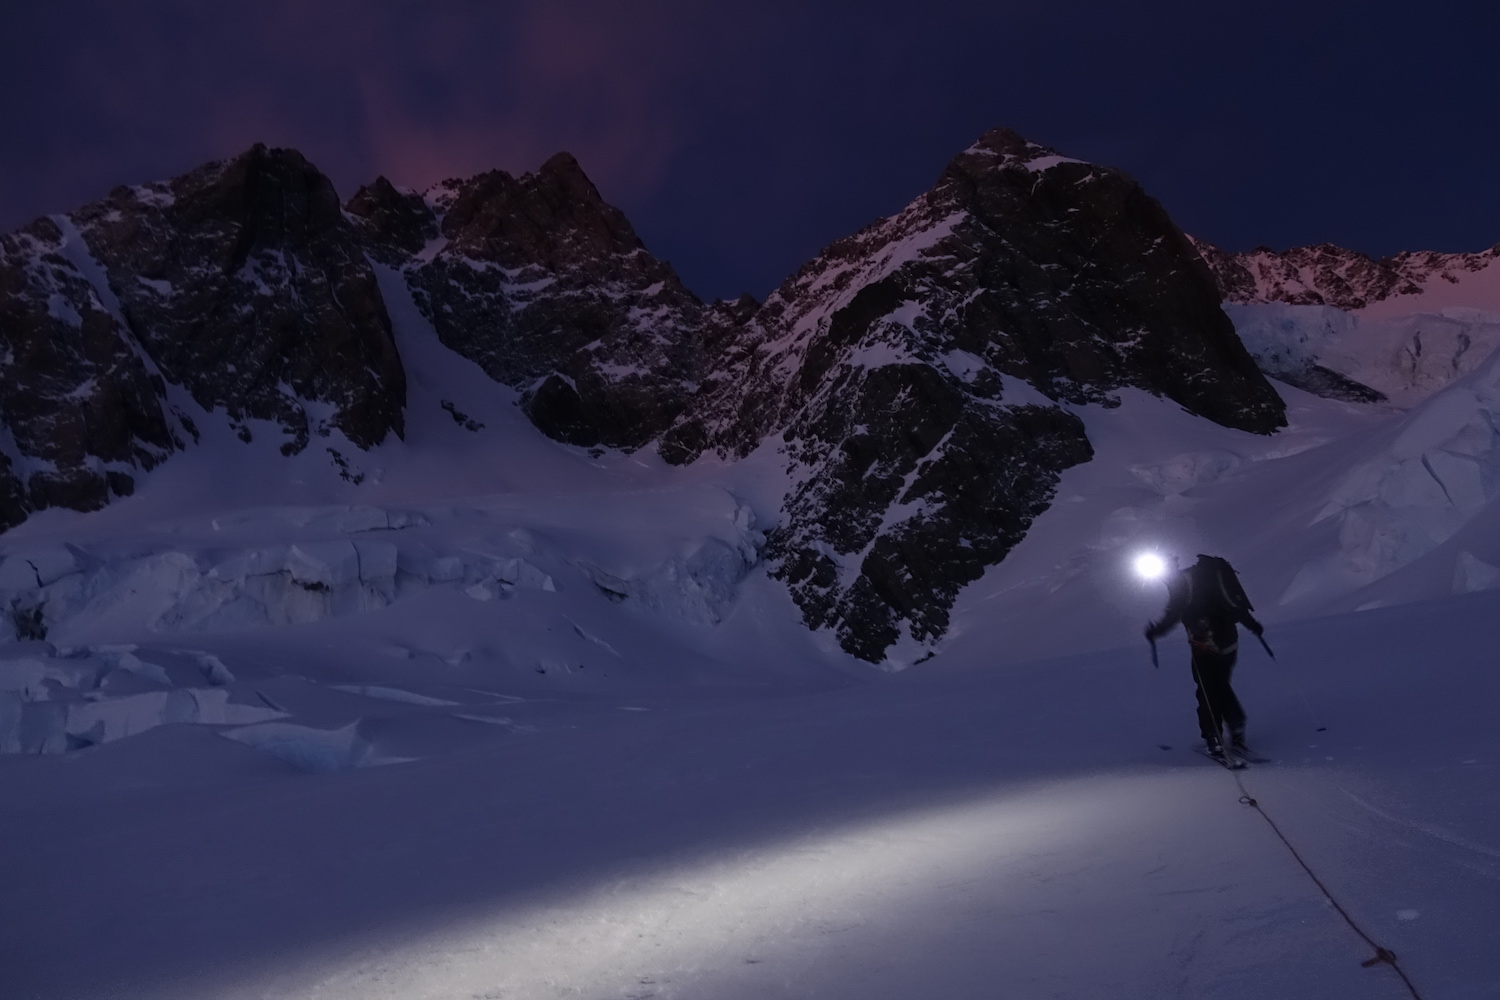 Ross Hewitt approaching the Bowie Couloir Aoraki / Mount Cook at night by Dave Searle